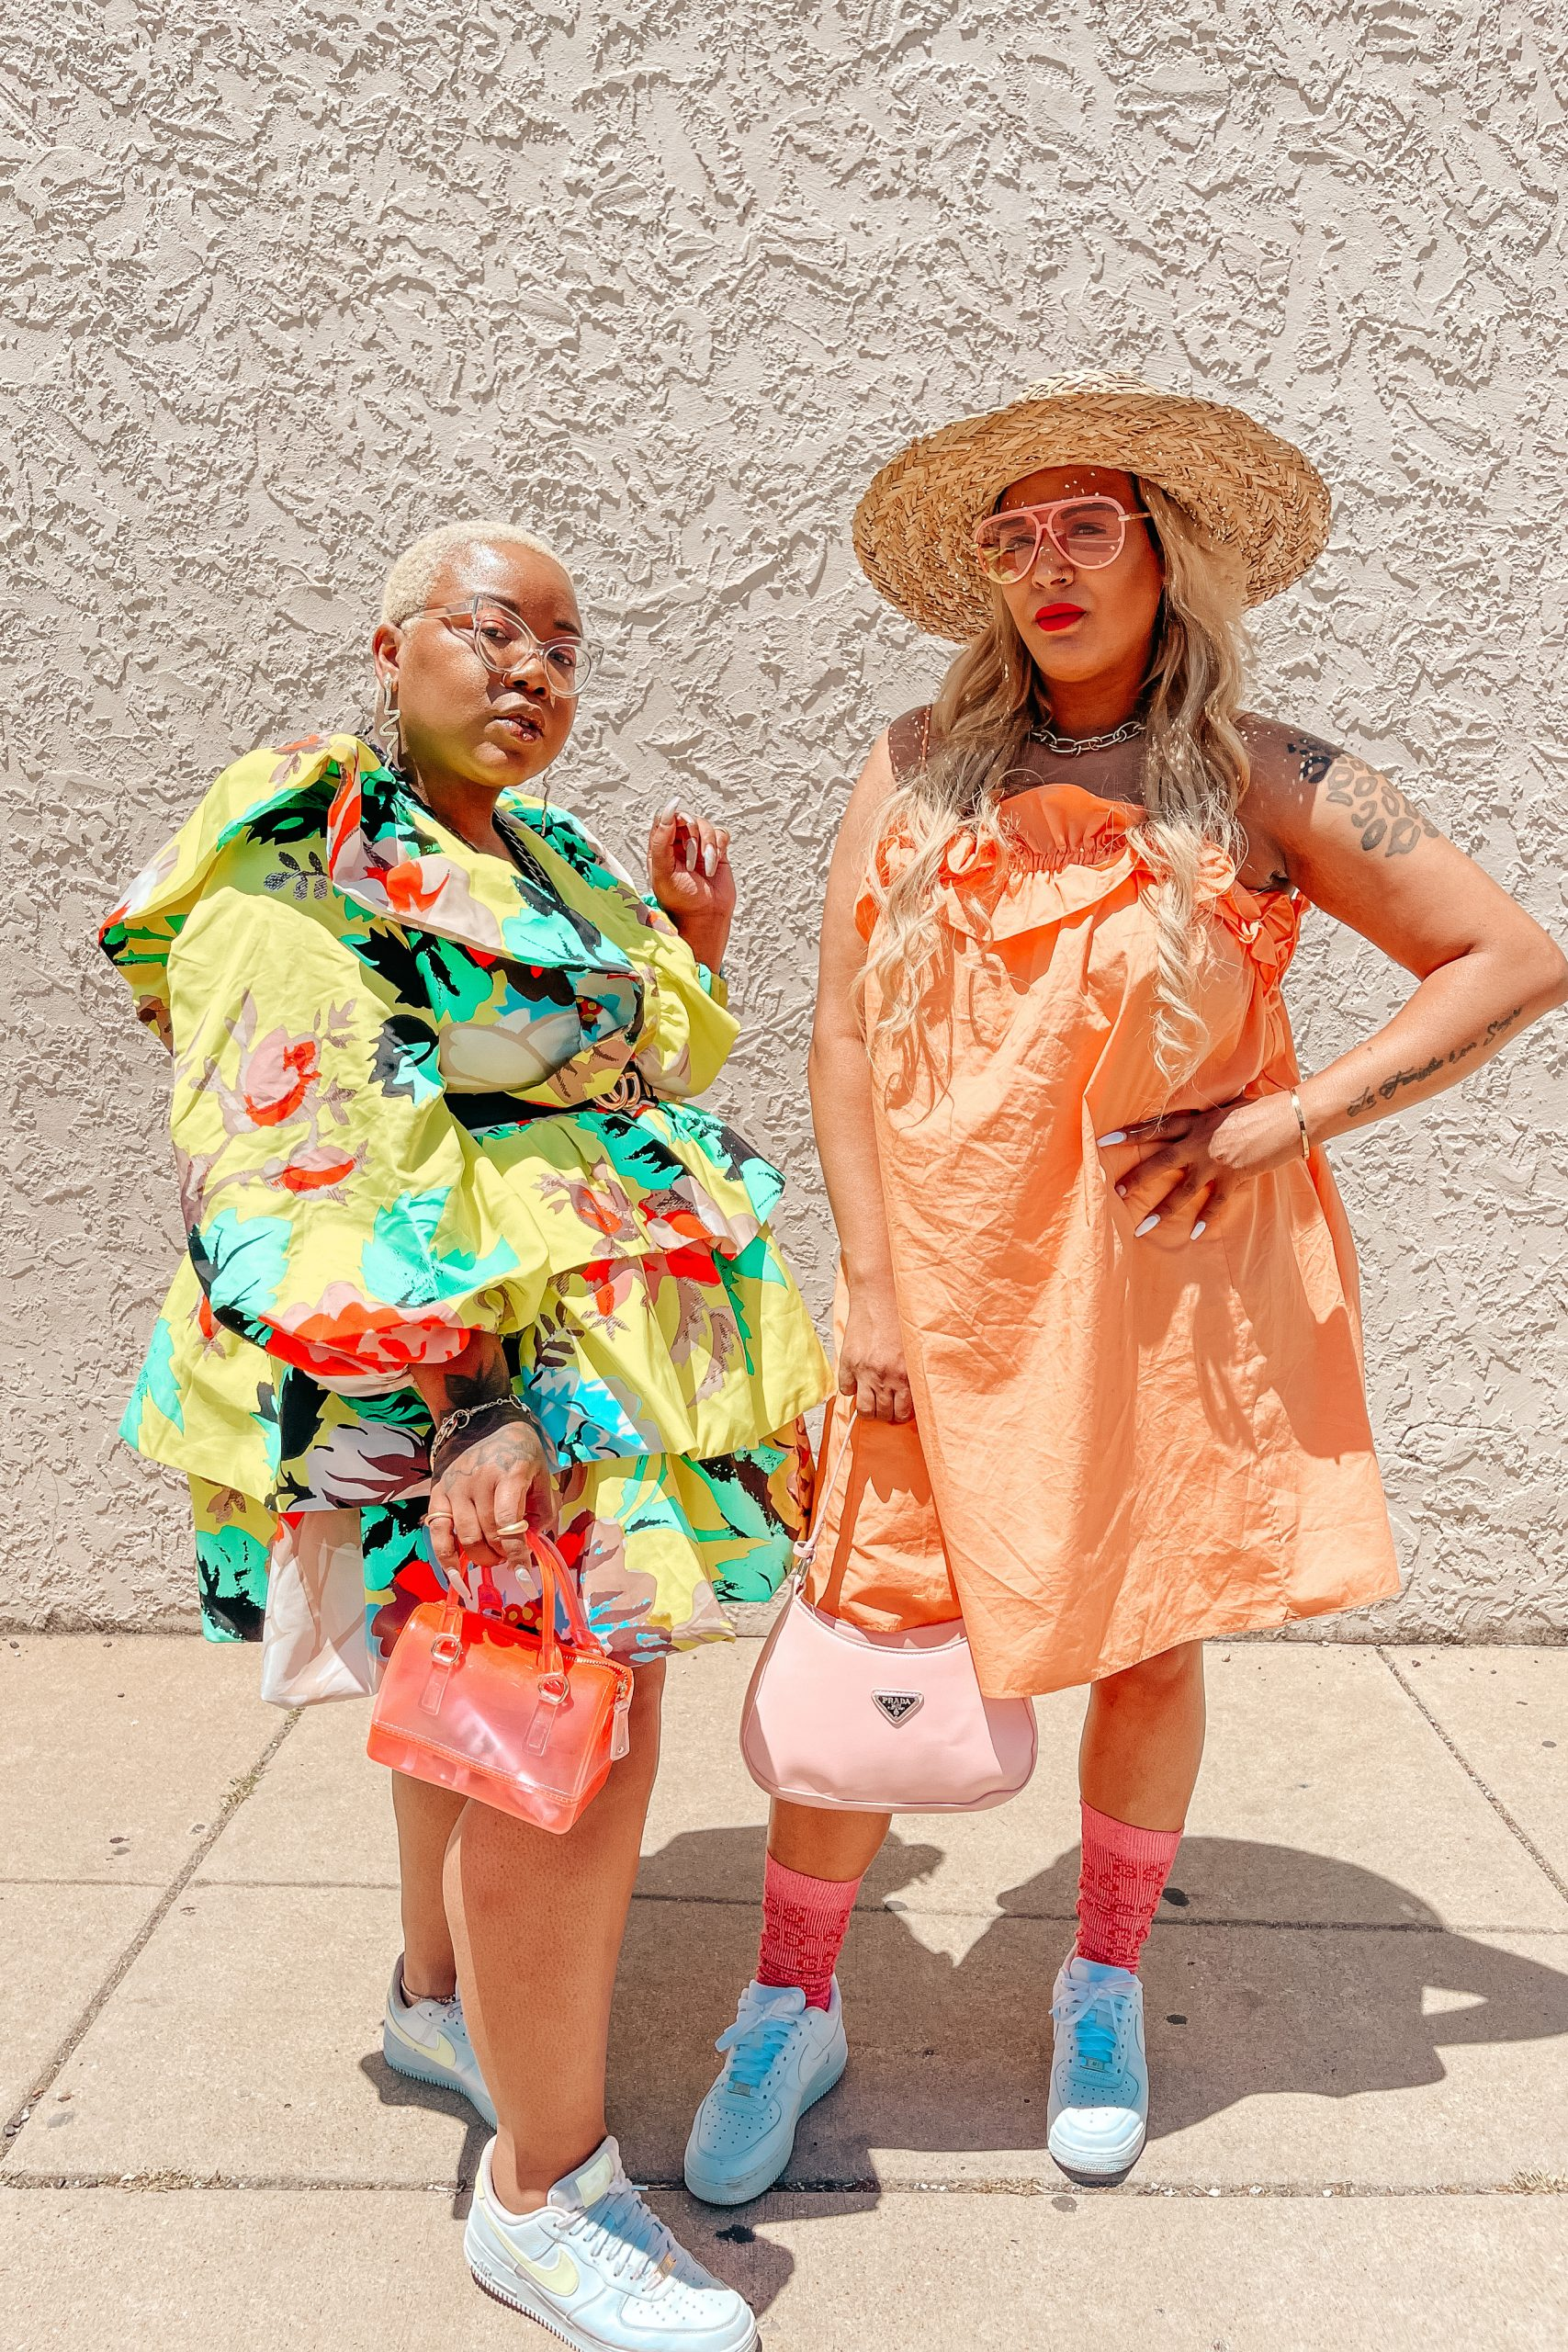 AK Brown & Courtney McManemy of The Fashion Besties wearing Christopher Rogers Neon 2 Dress from Target and Gucci Belt and a ruffled trimmed dress from H&M and Prada bag in St. Louis MO